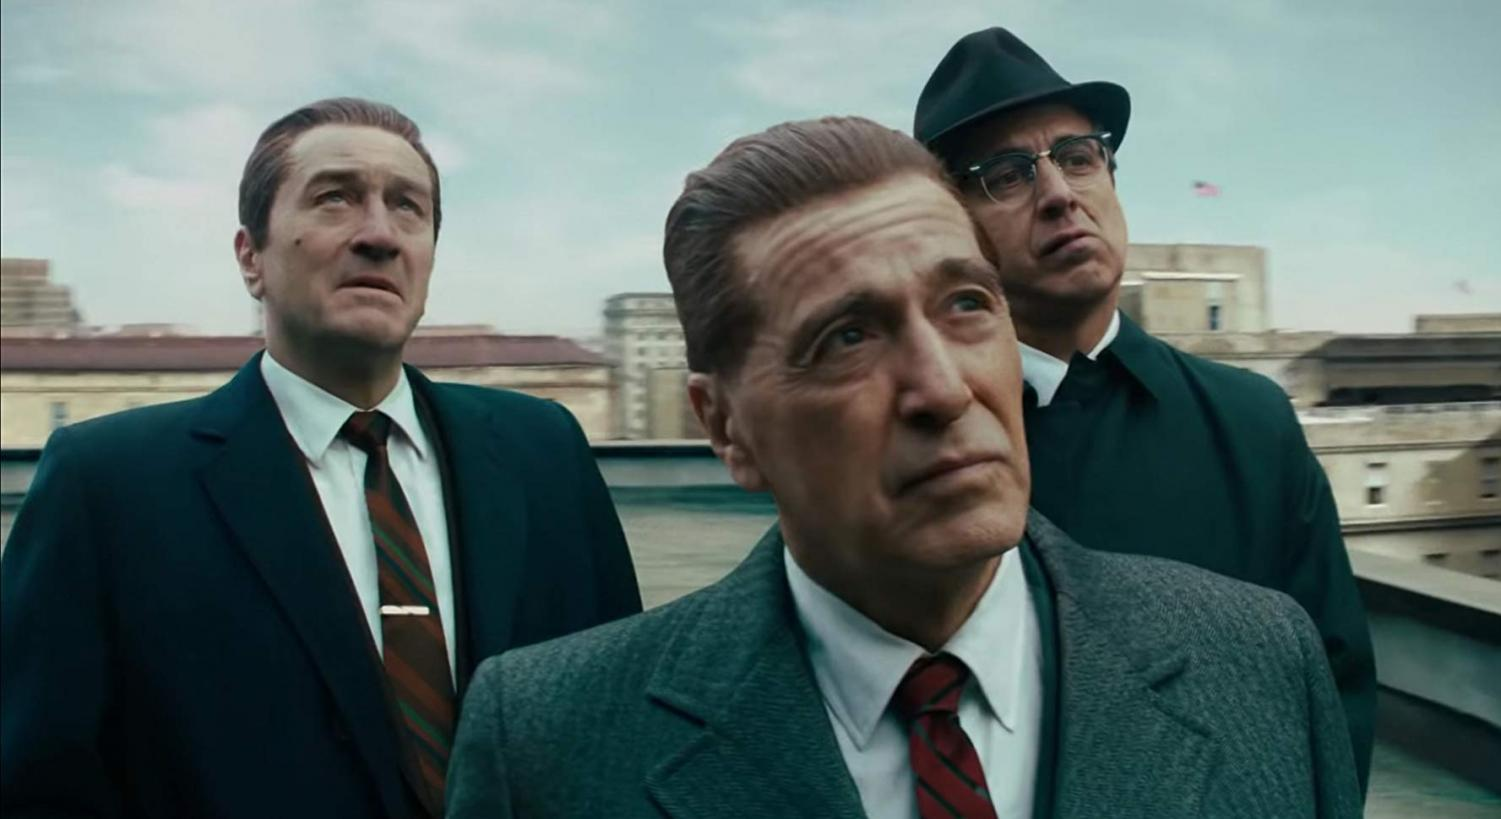 Robert De Niro (left), Al Pacino (center) and Ray Romano (right) offer a performance only the titans of Hollywood could pull off.